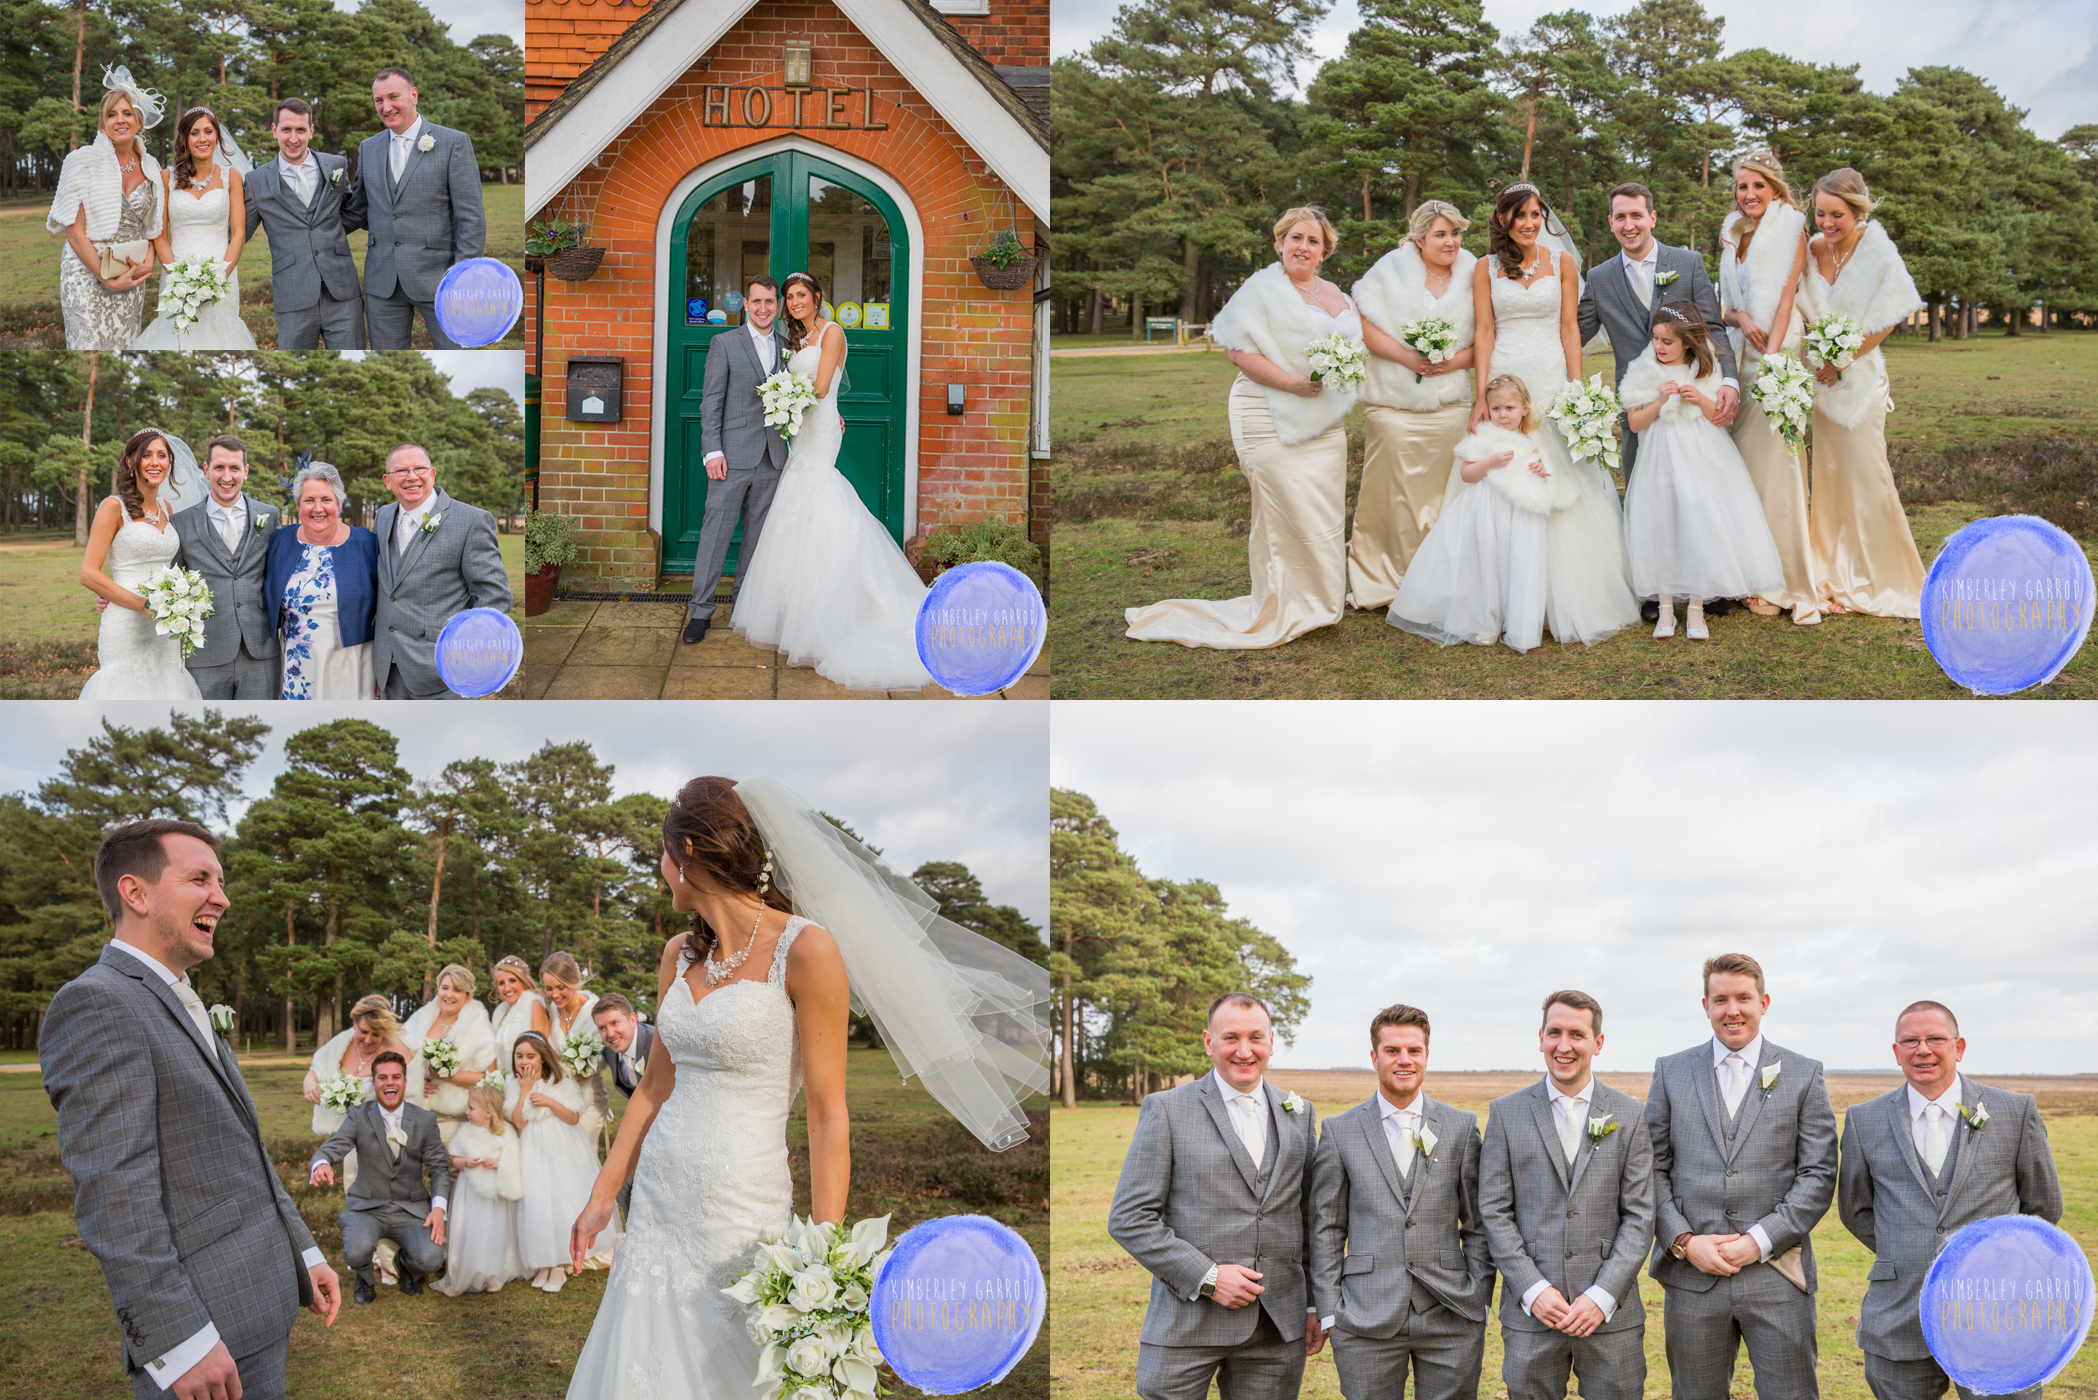 Beaulieu Wedding Photographer Kimberley Garrod (20 of 51)